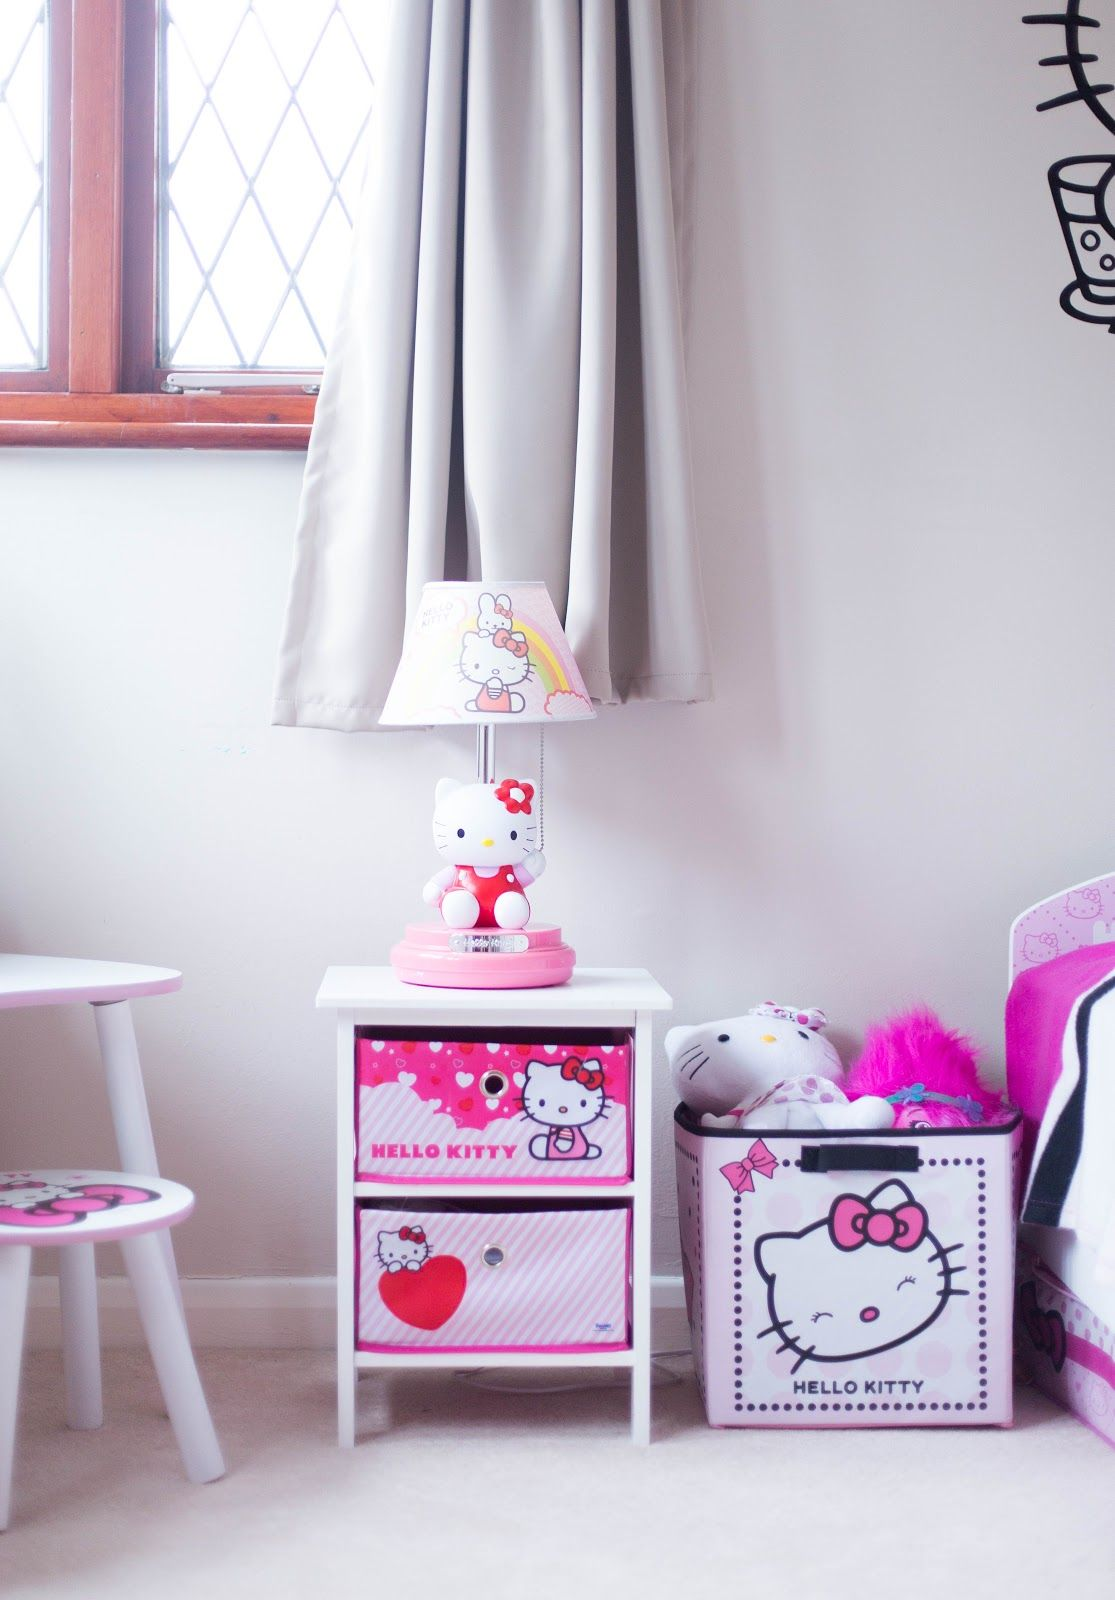 MINI MAKE-OVER: HELLO KITTY BEDROOM | Hello kitty bedroom ...